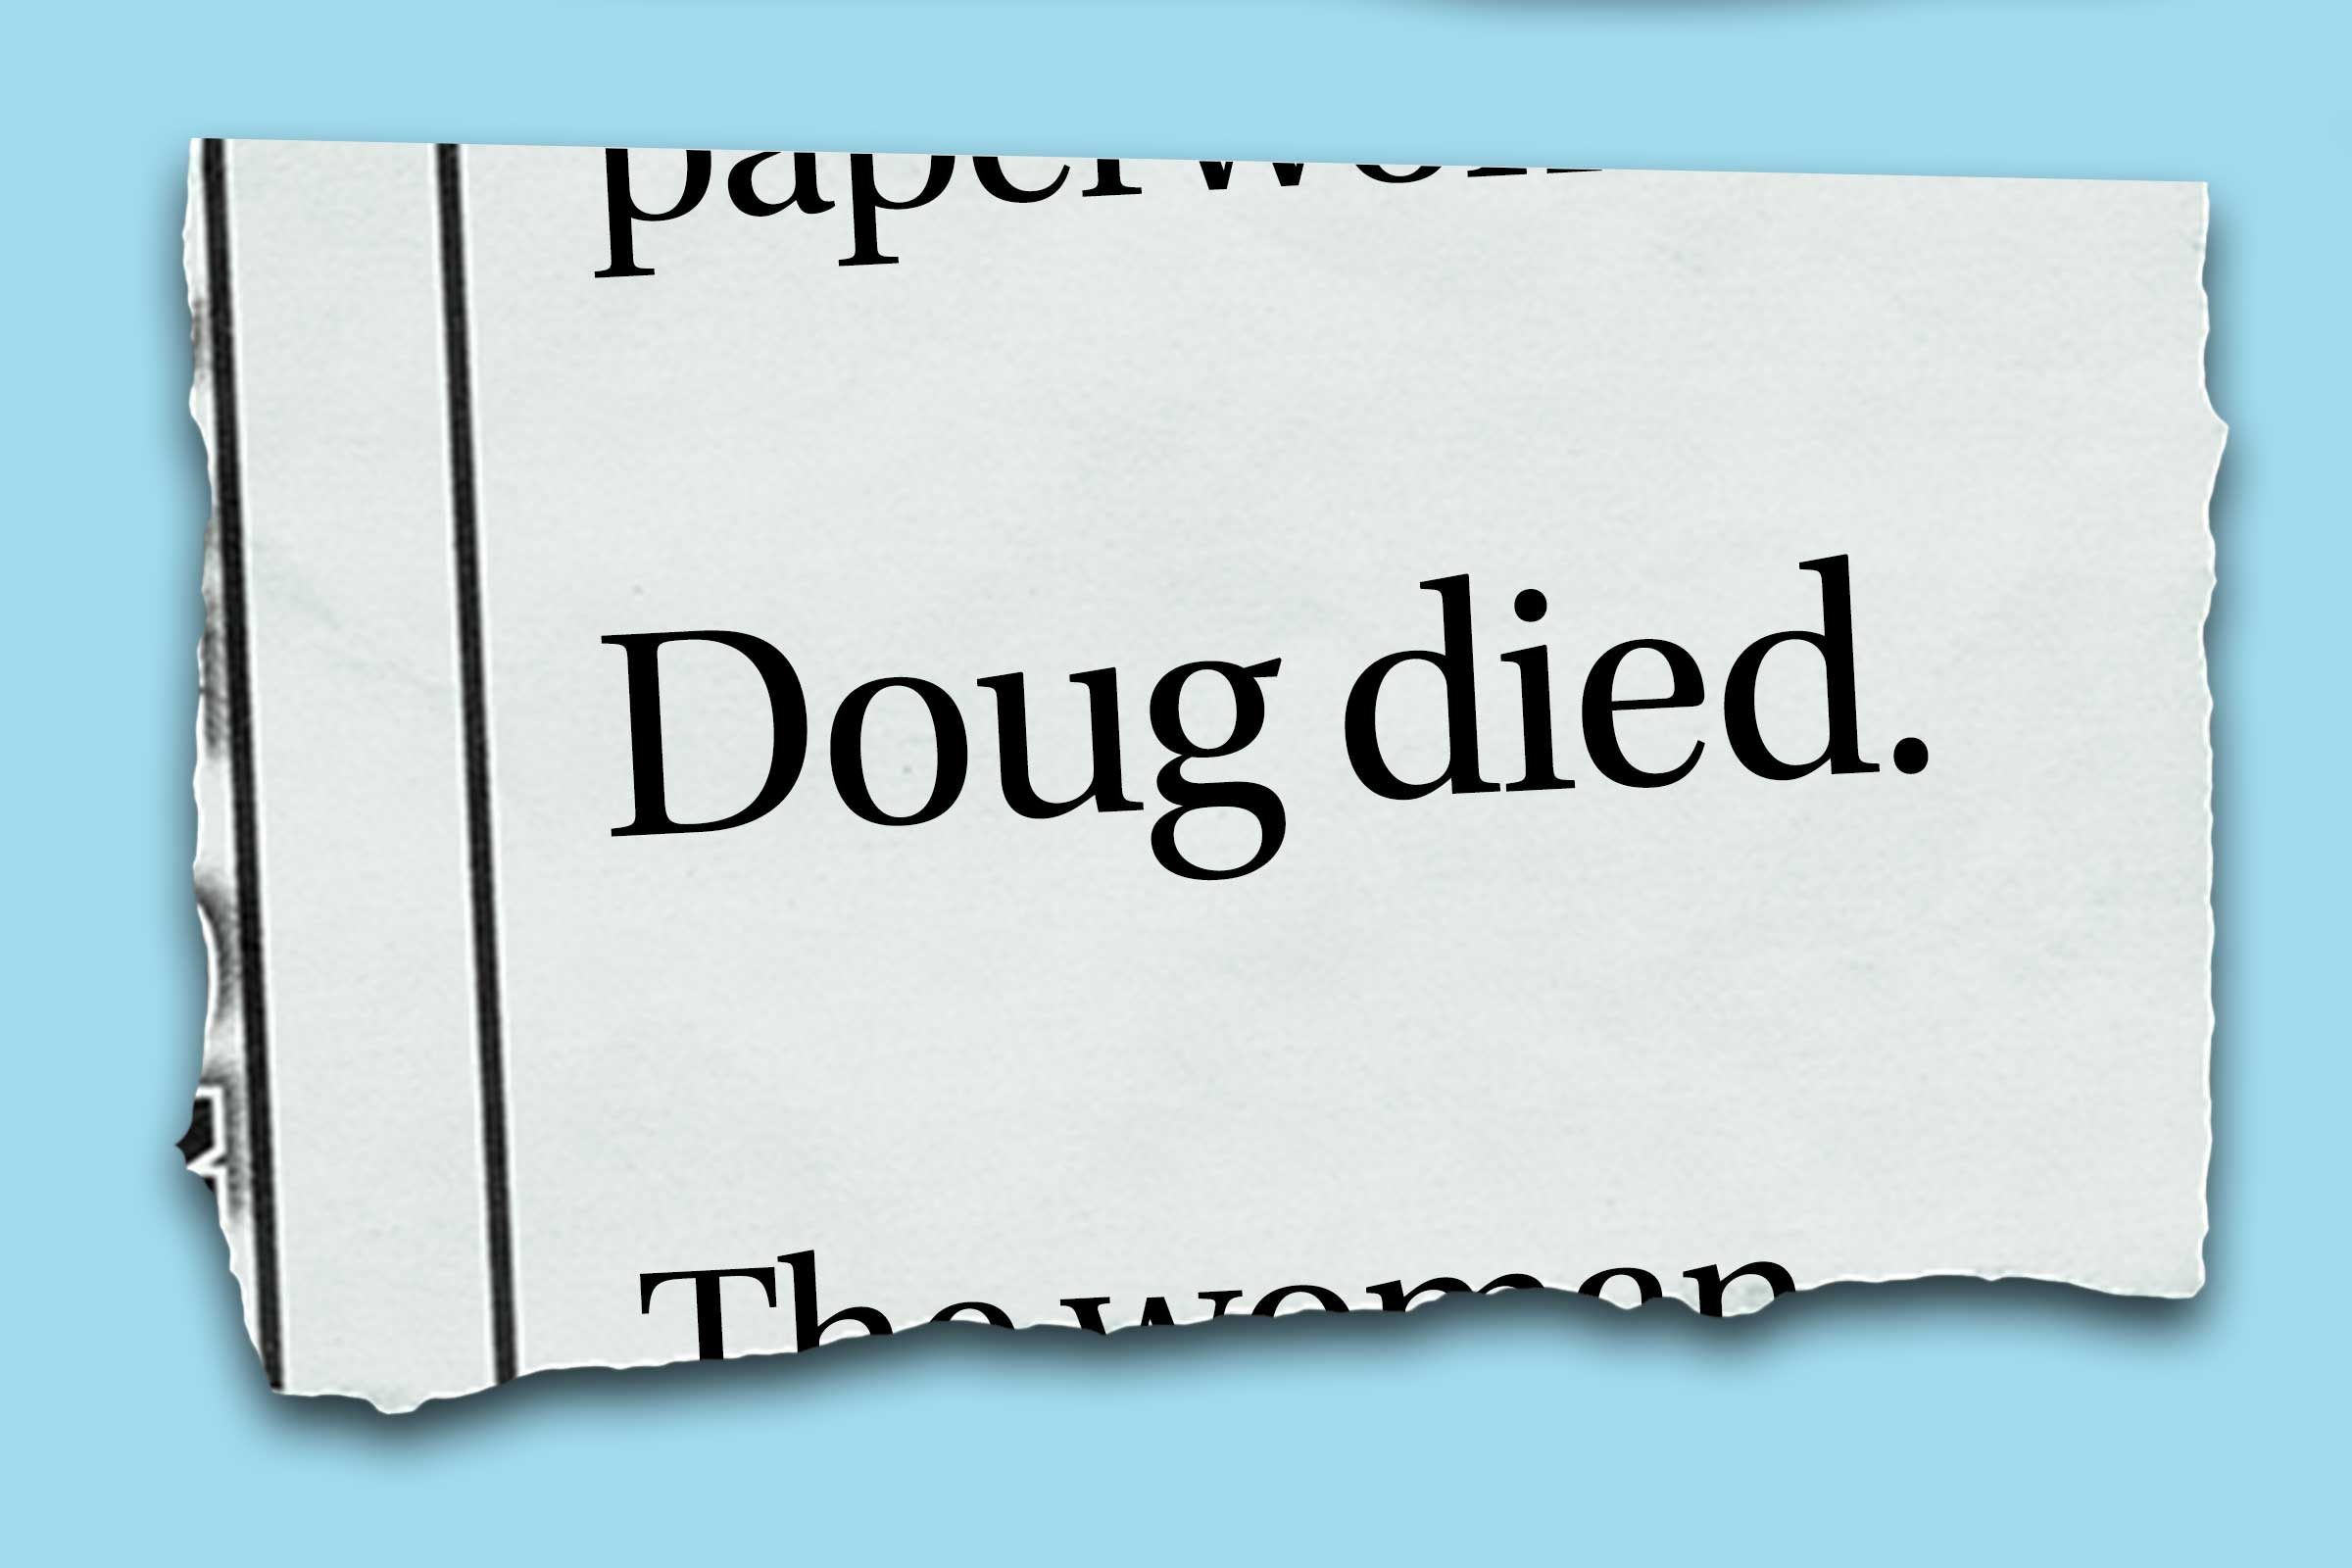 Strange and funny obituaries